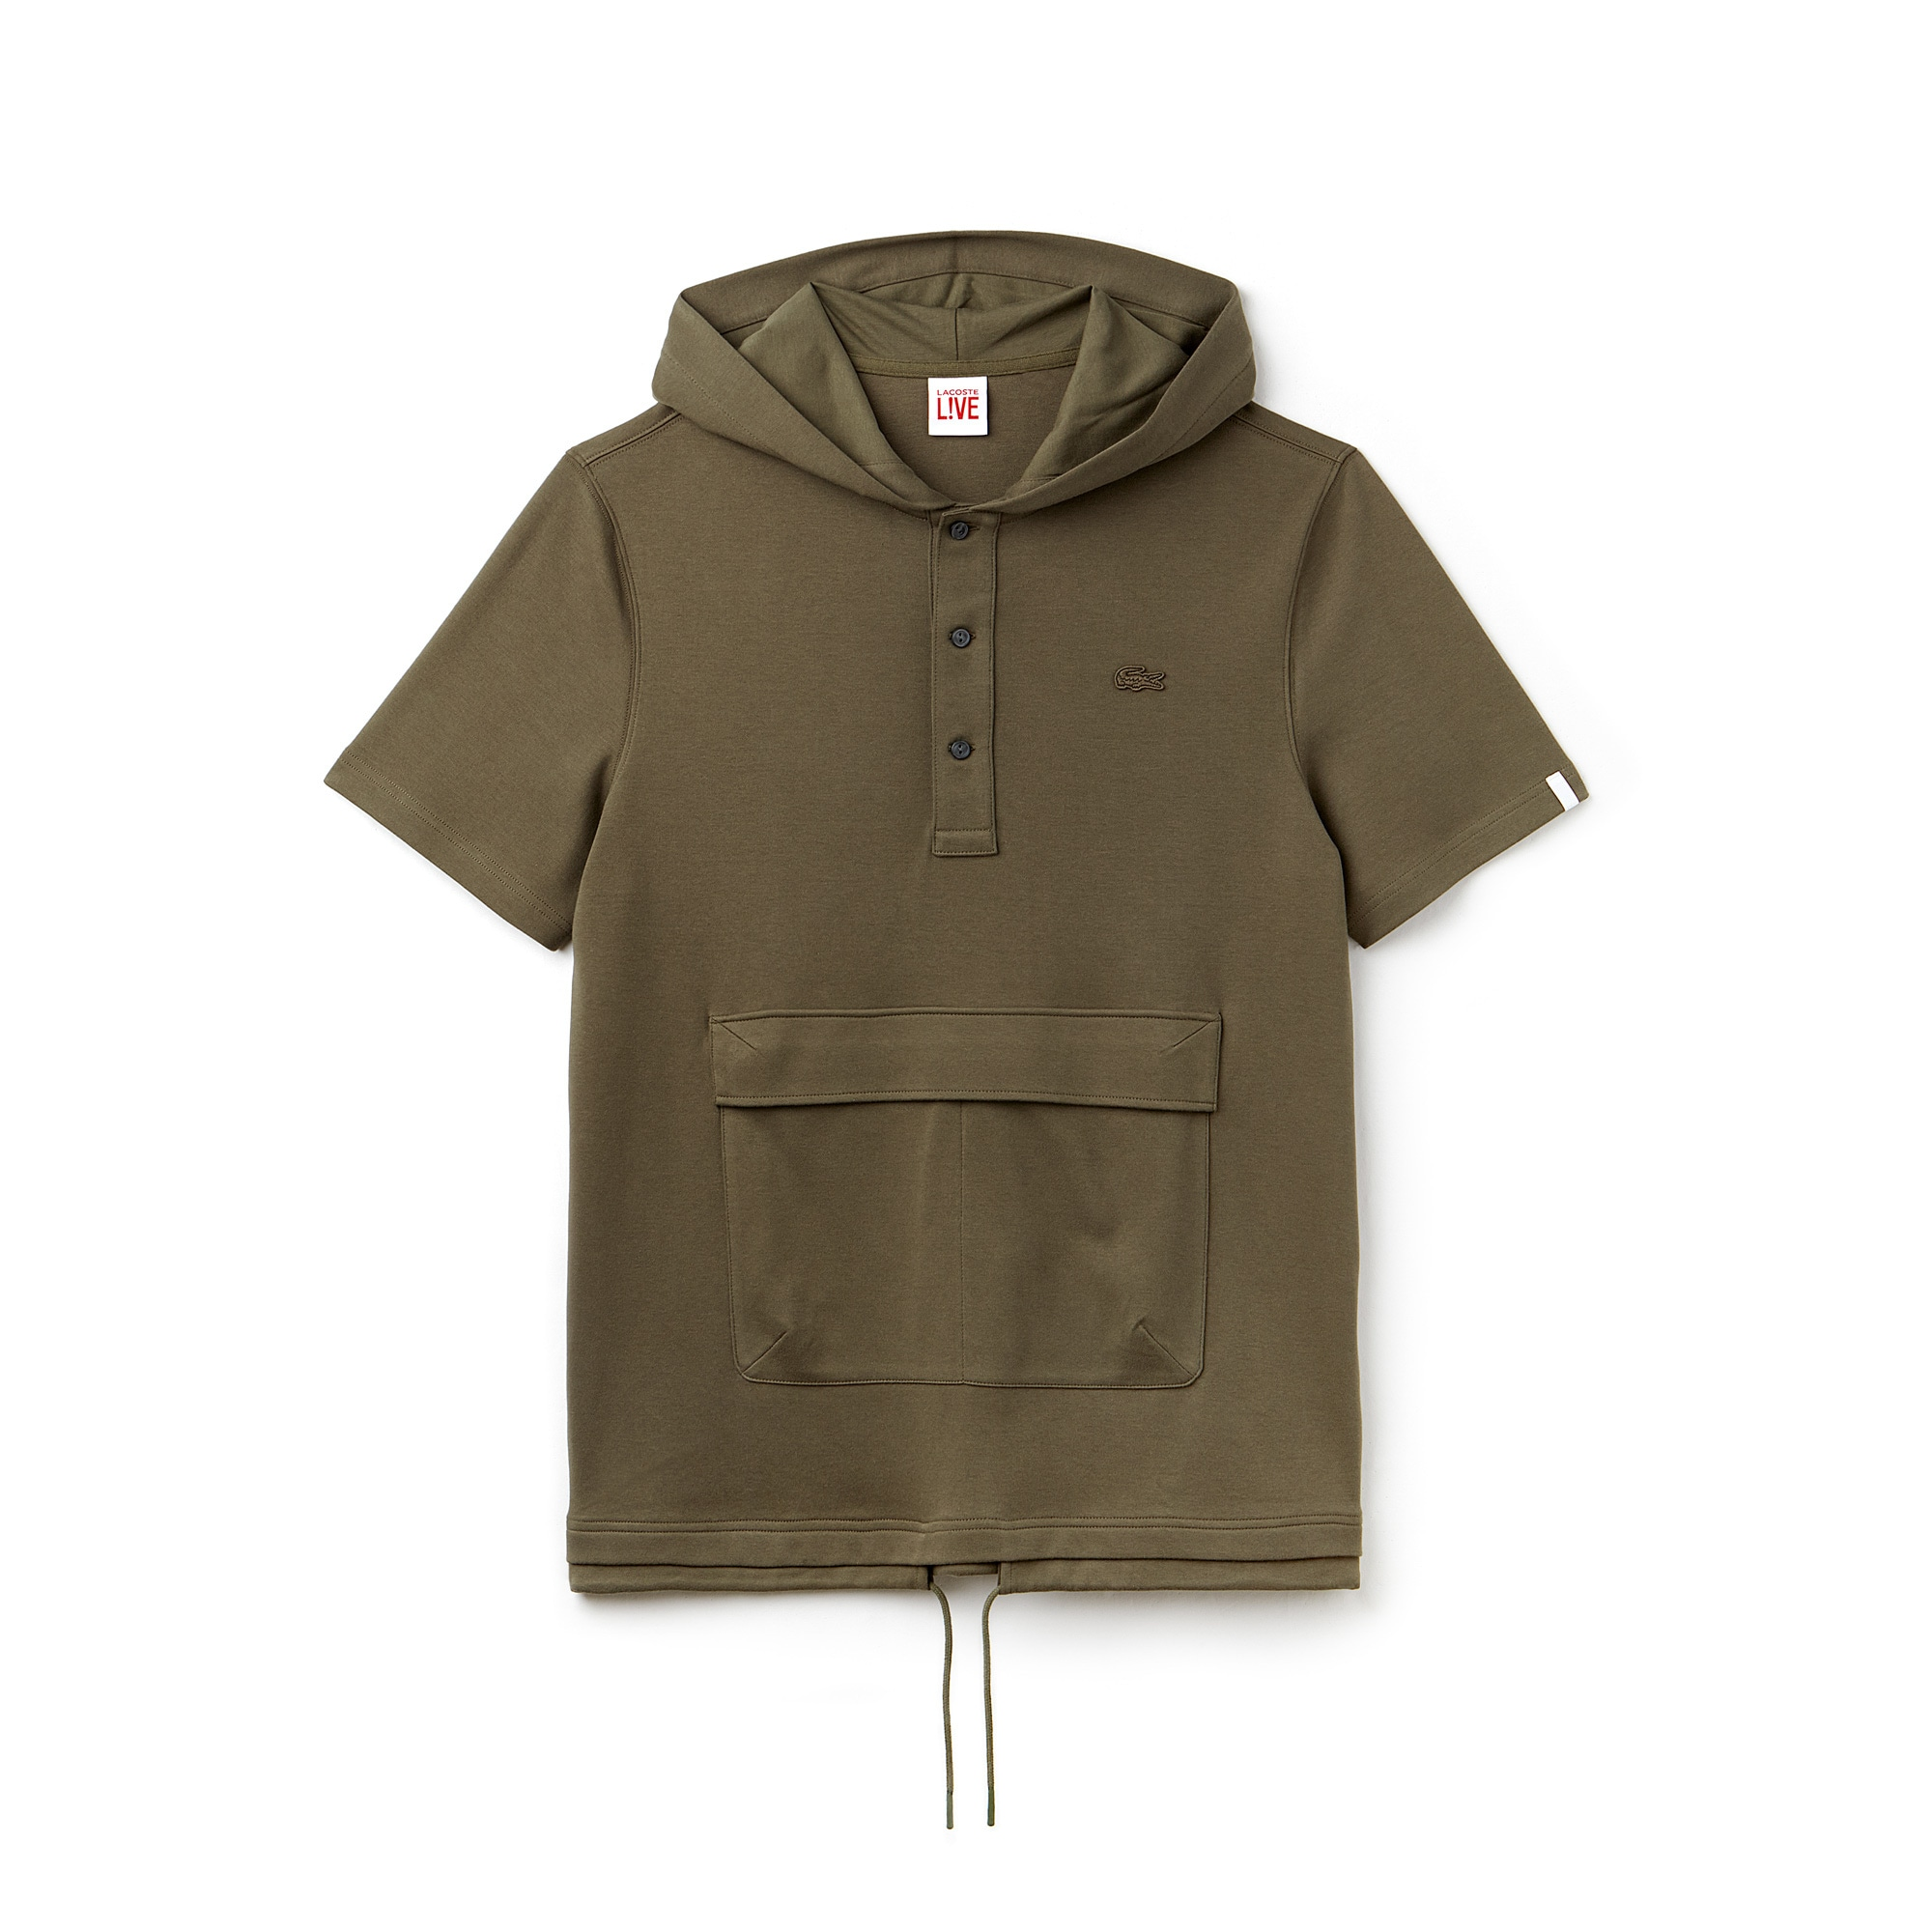 Men's Lacoste LIVE Hooded Interlock Sweatshirt